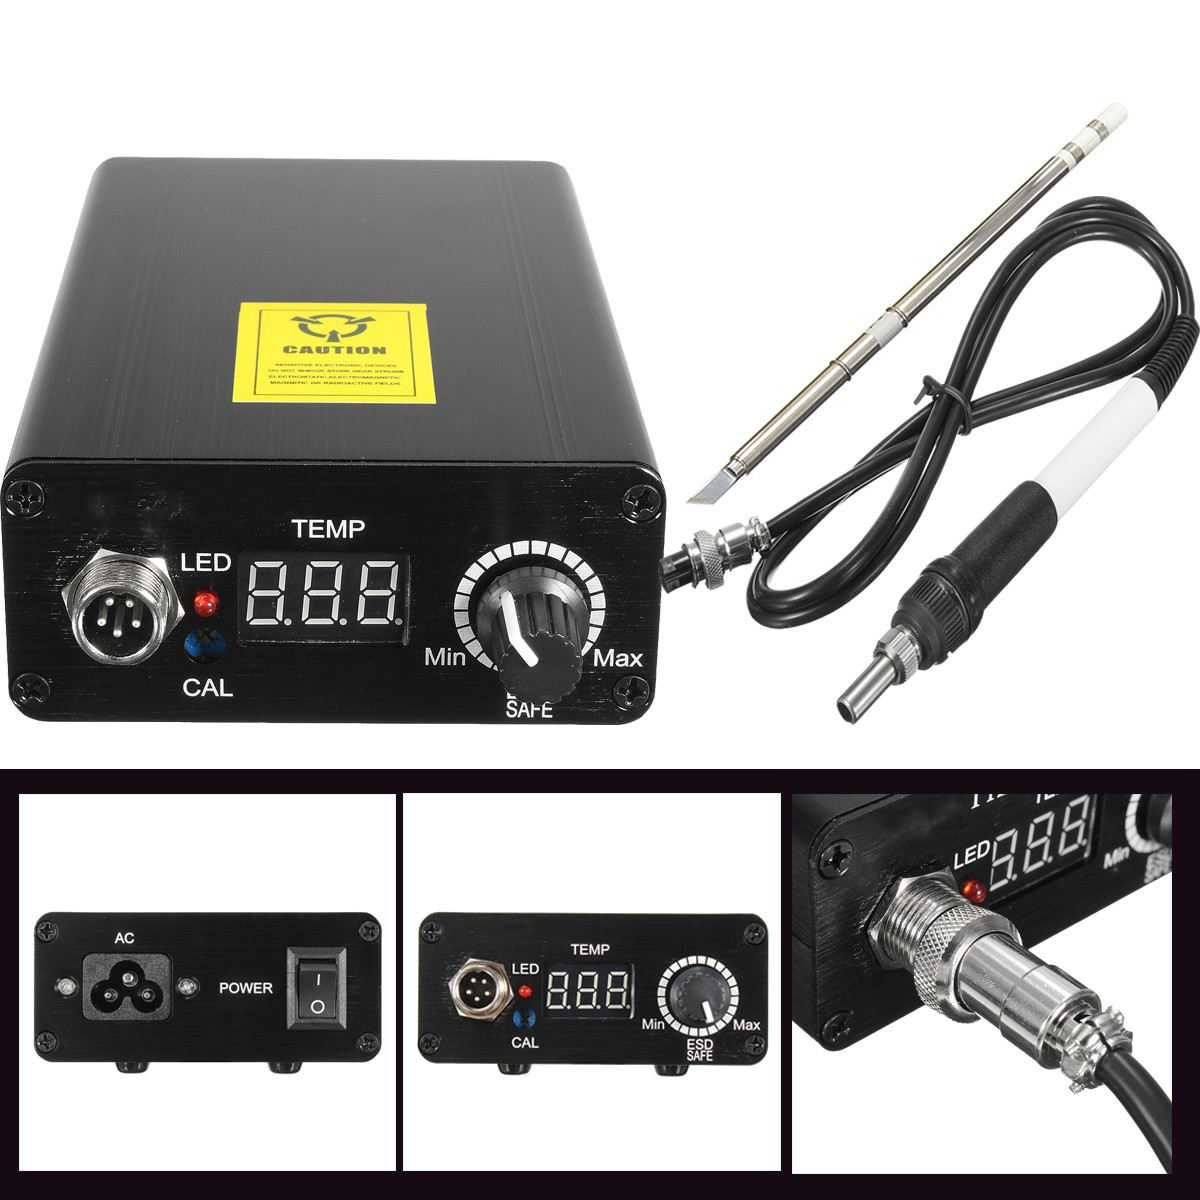 T12 Soldering Station Electronic Soldering Iron T12 K Tip LED Digital solder Welding Iron kit Quick Heating